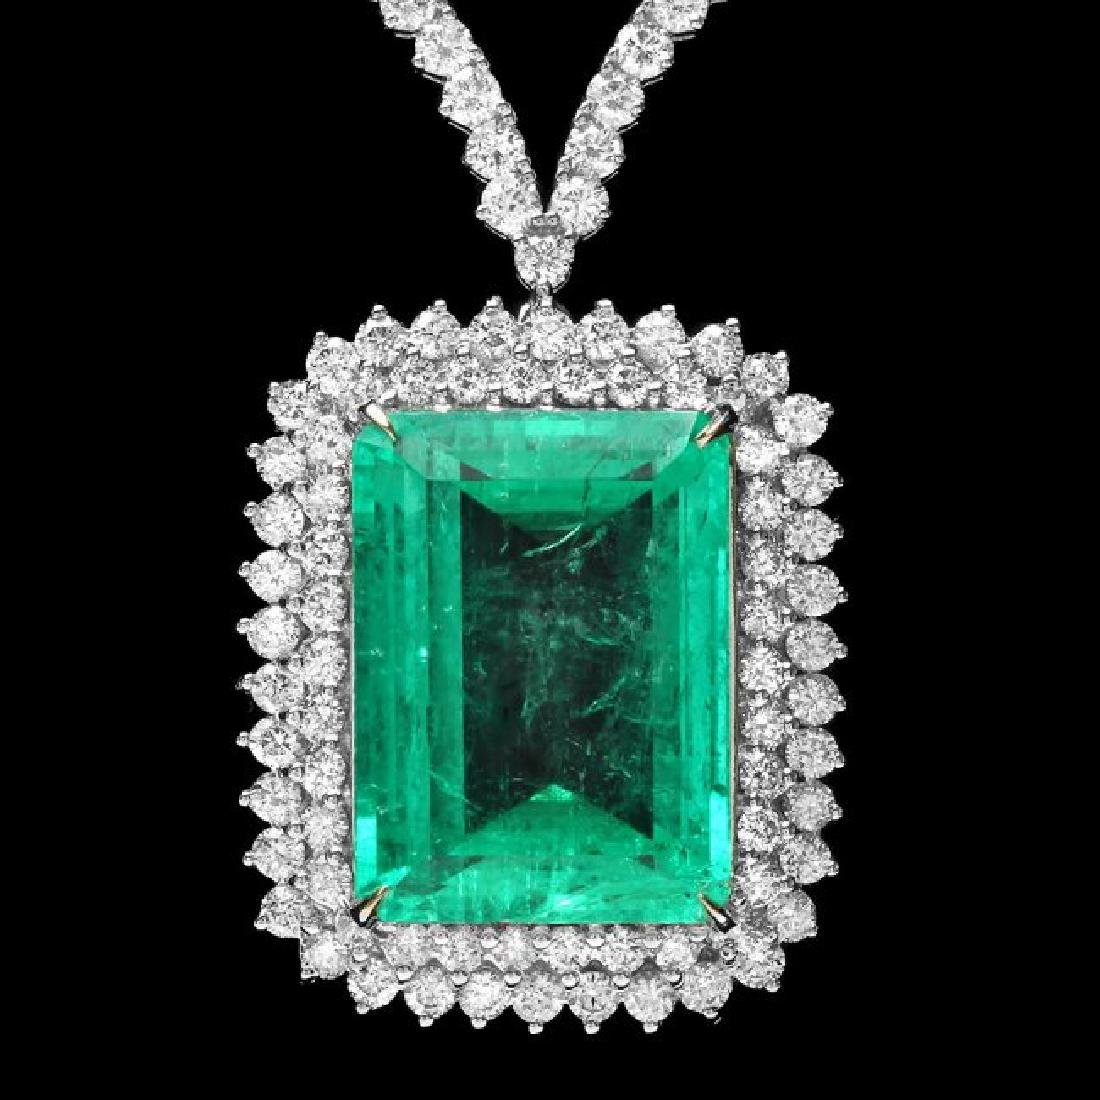 18k White Gold 32.50ct Emerald 11.50ct Diamond Necklace